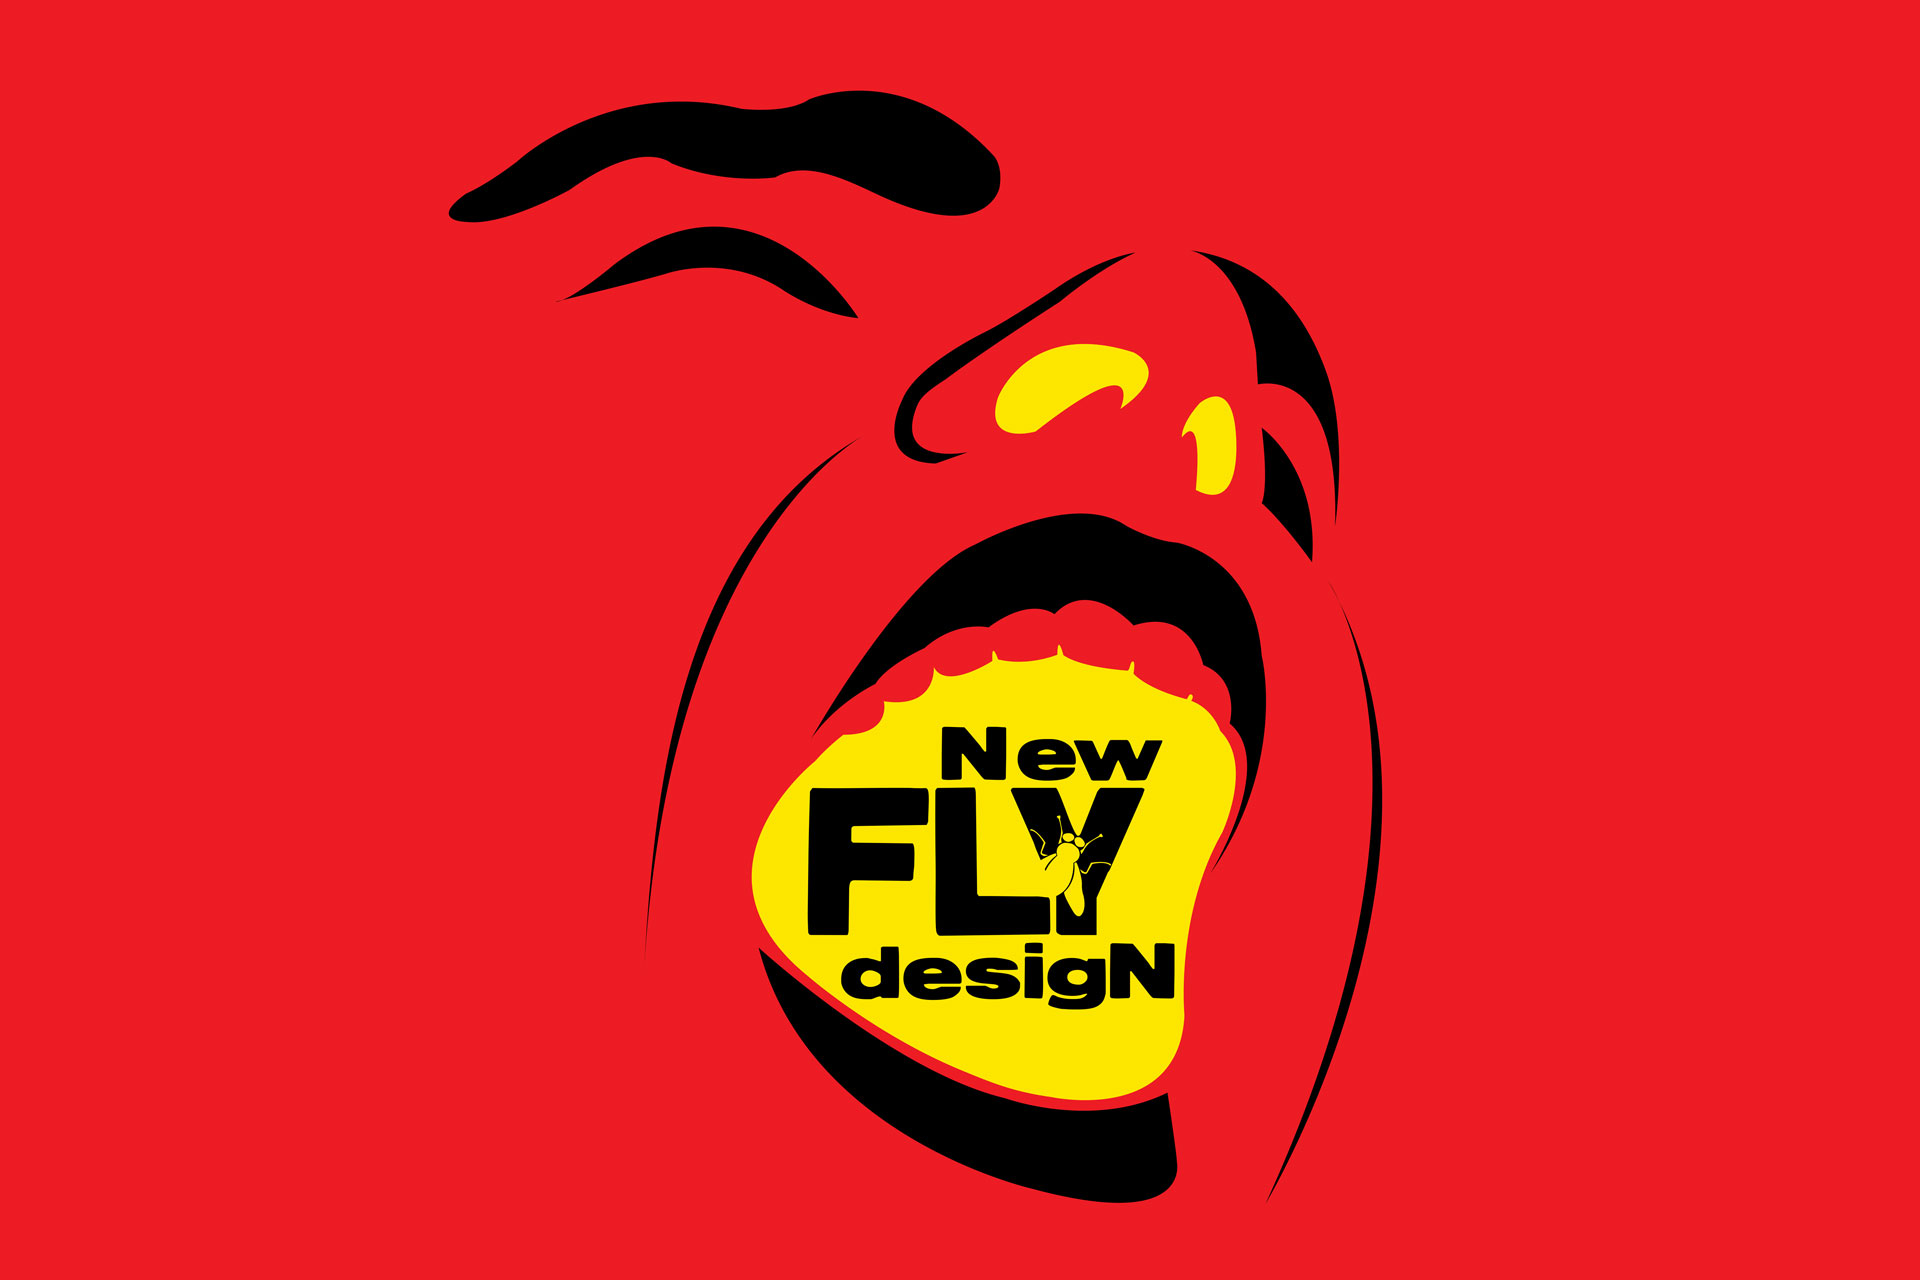 new fly design logo